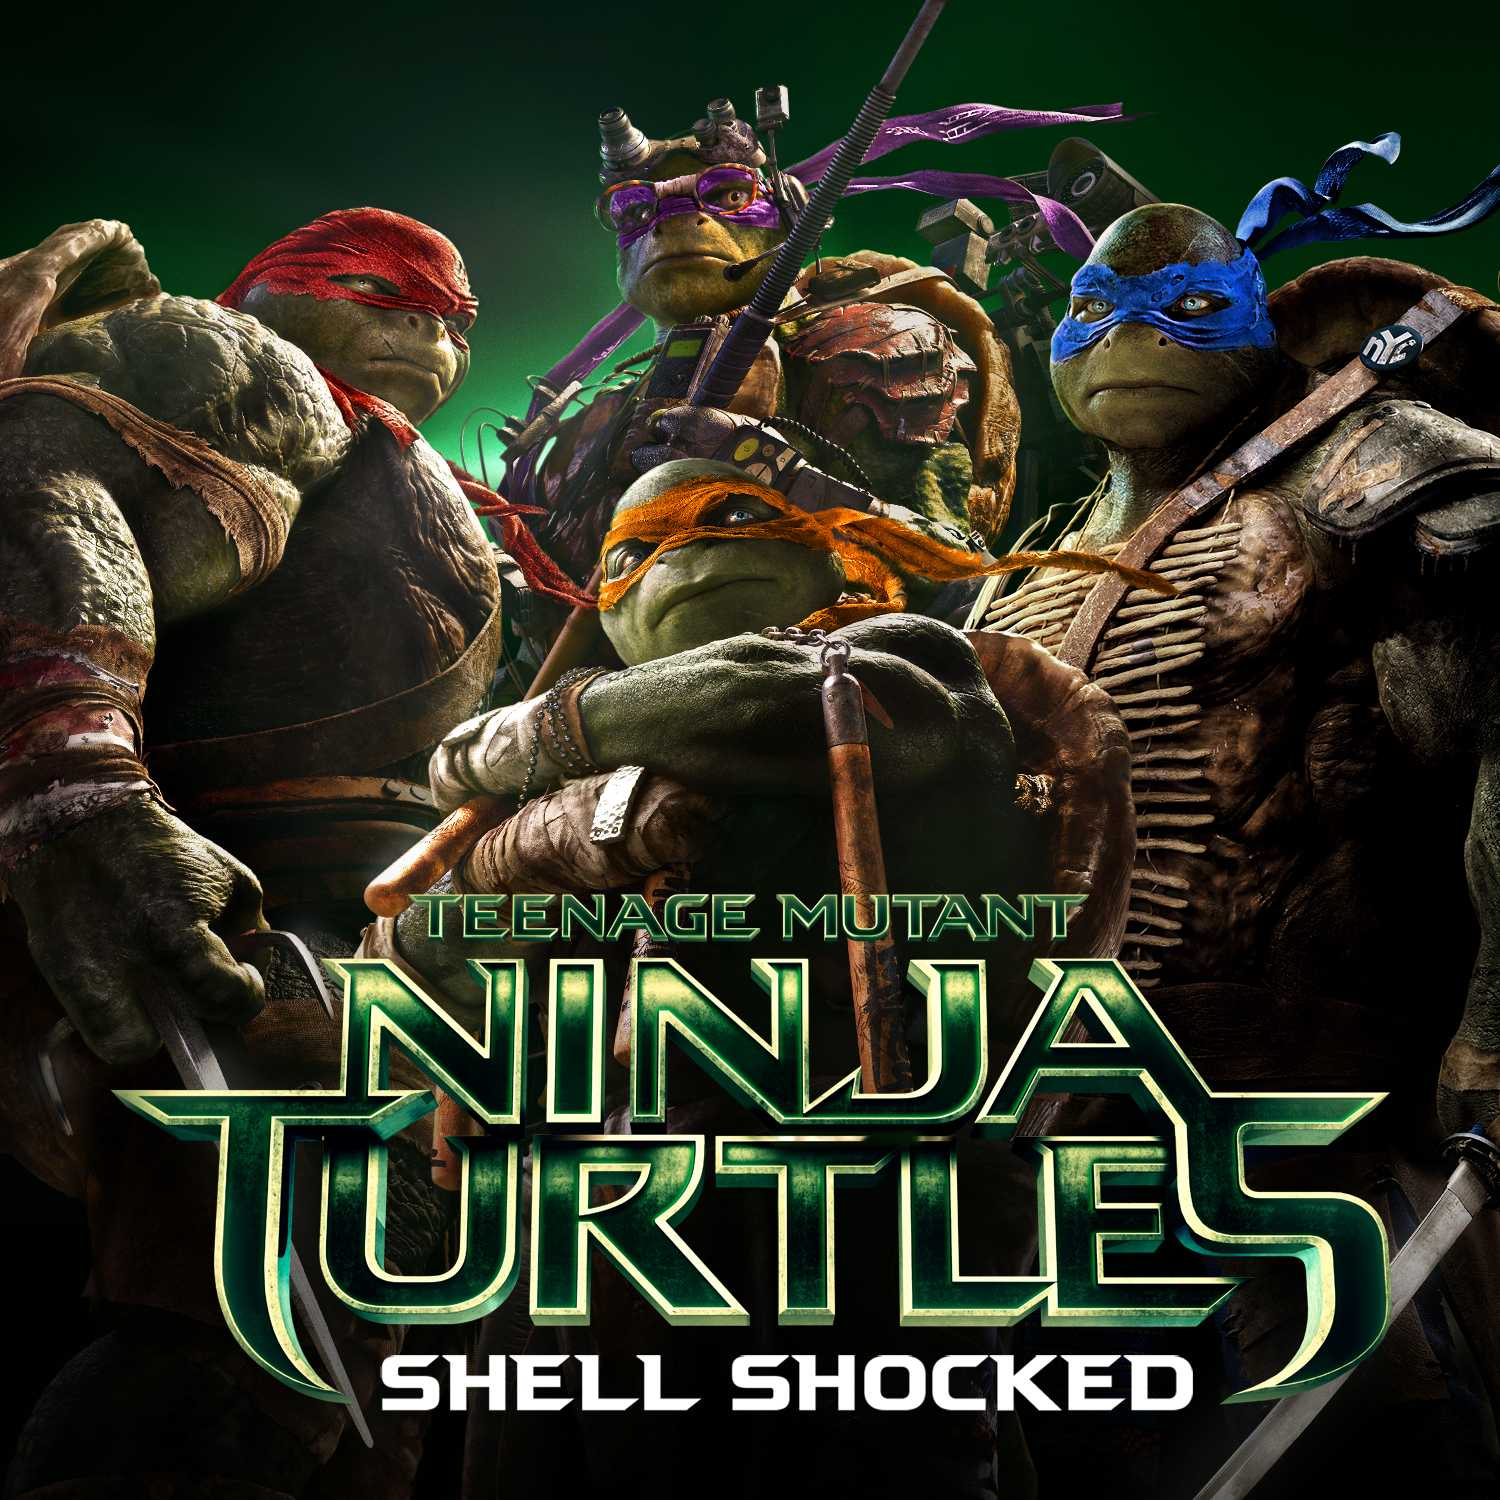 First Single 'Shell Shocked' from TEENAGE MUTANT NINJA TURLES is Released